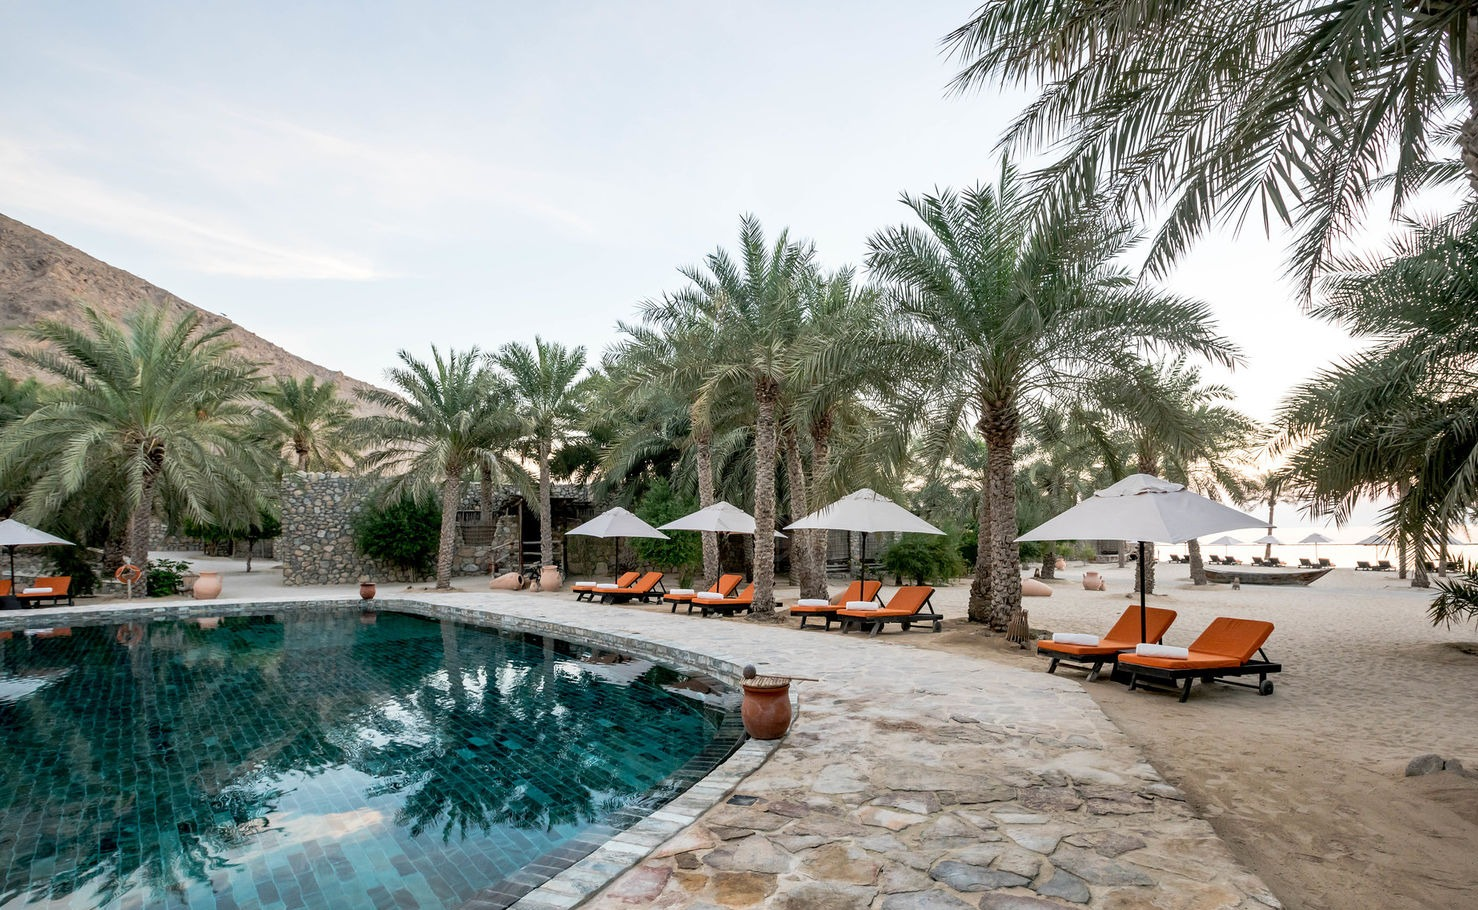 pool and palm trees at zinghy hotel you can paraglide to